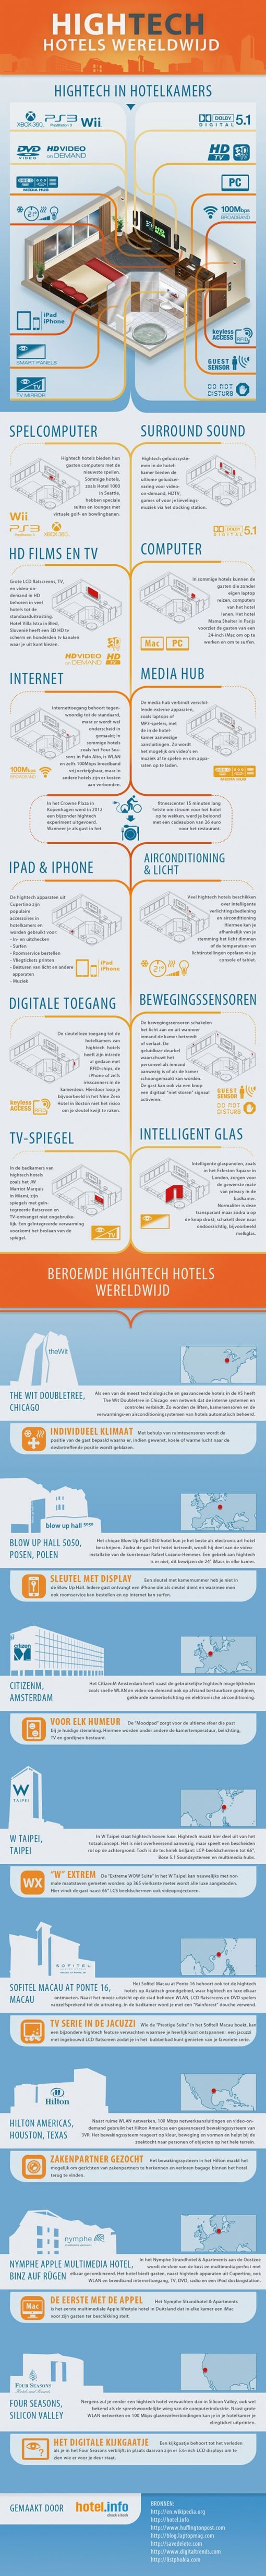 hightech-hotels-infographic